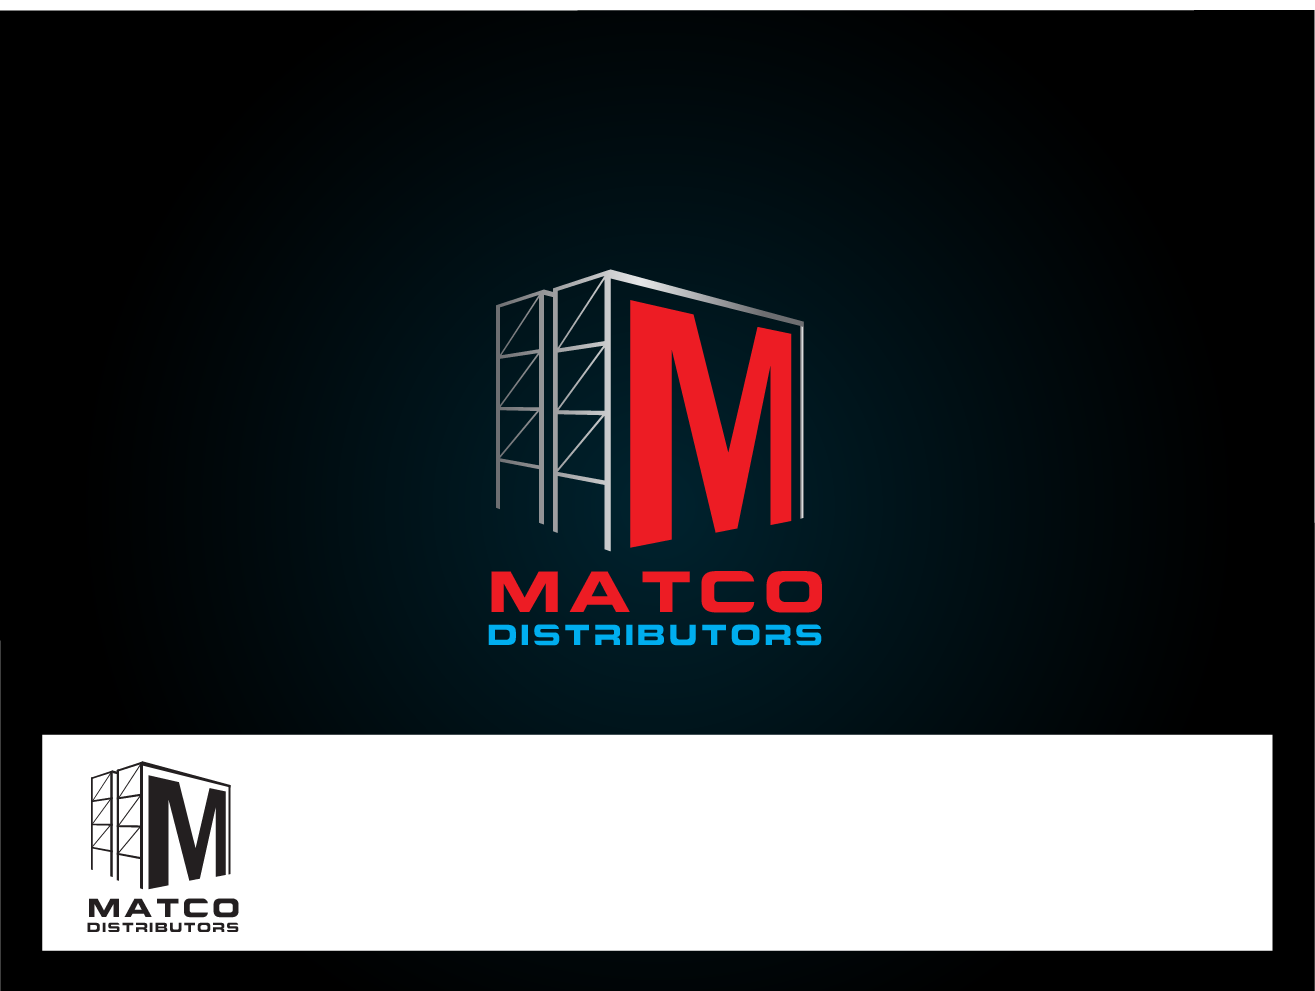 New logo wanted for Matco Distributors